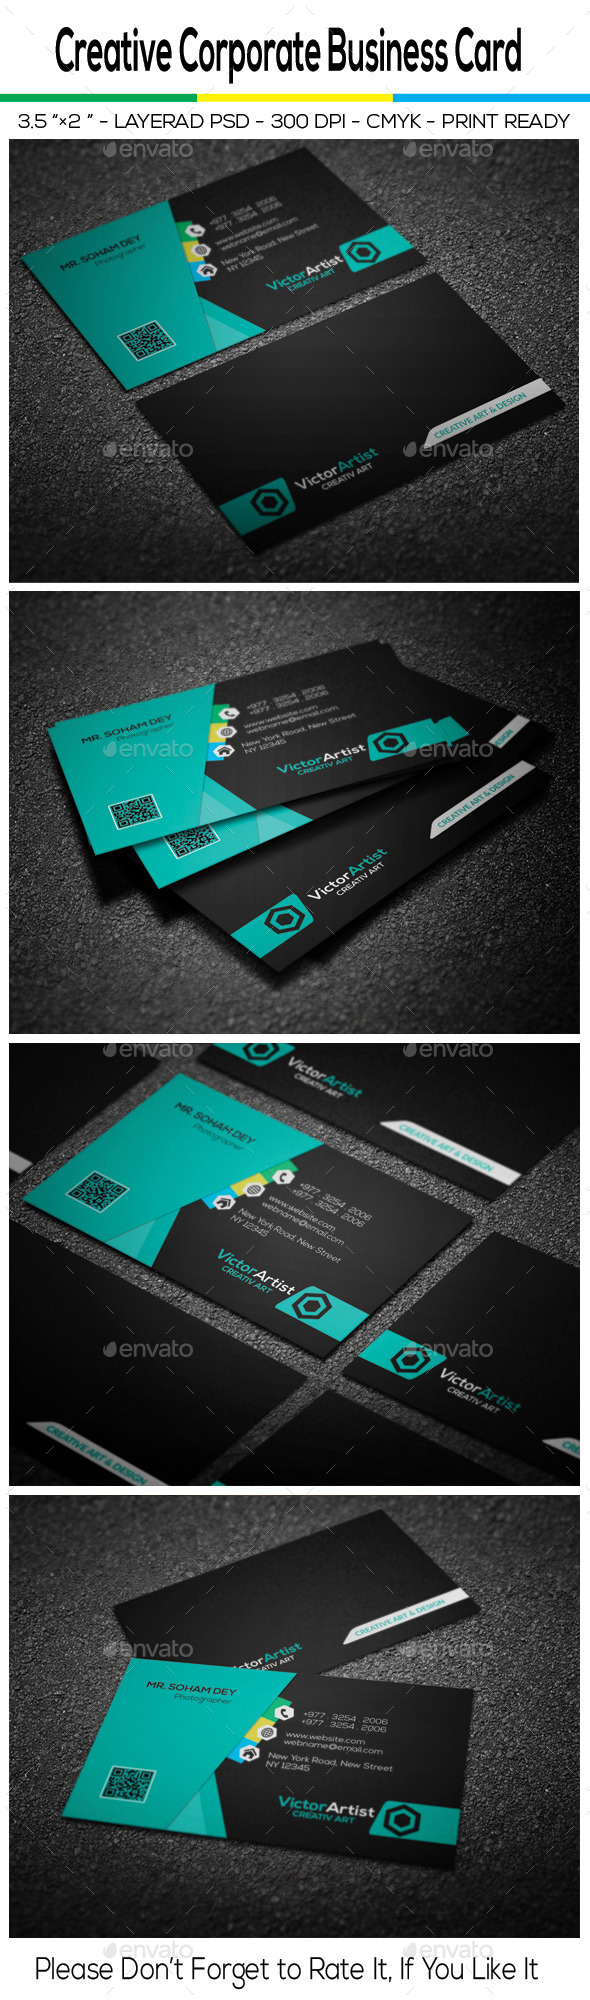 GraphicRiver Creative Corporate Business Card 10359385